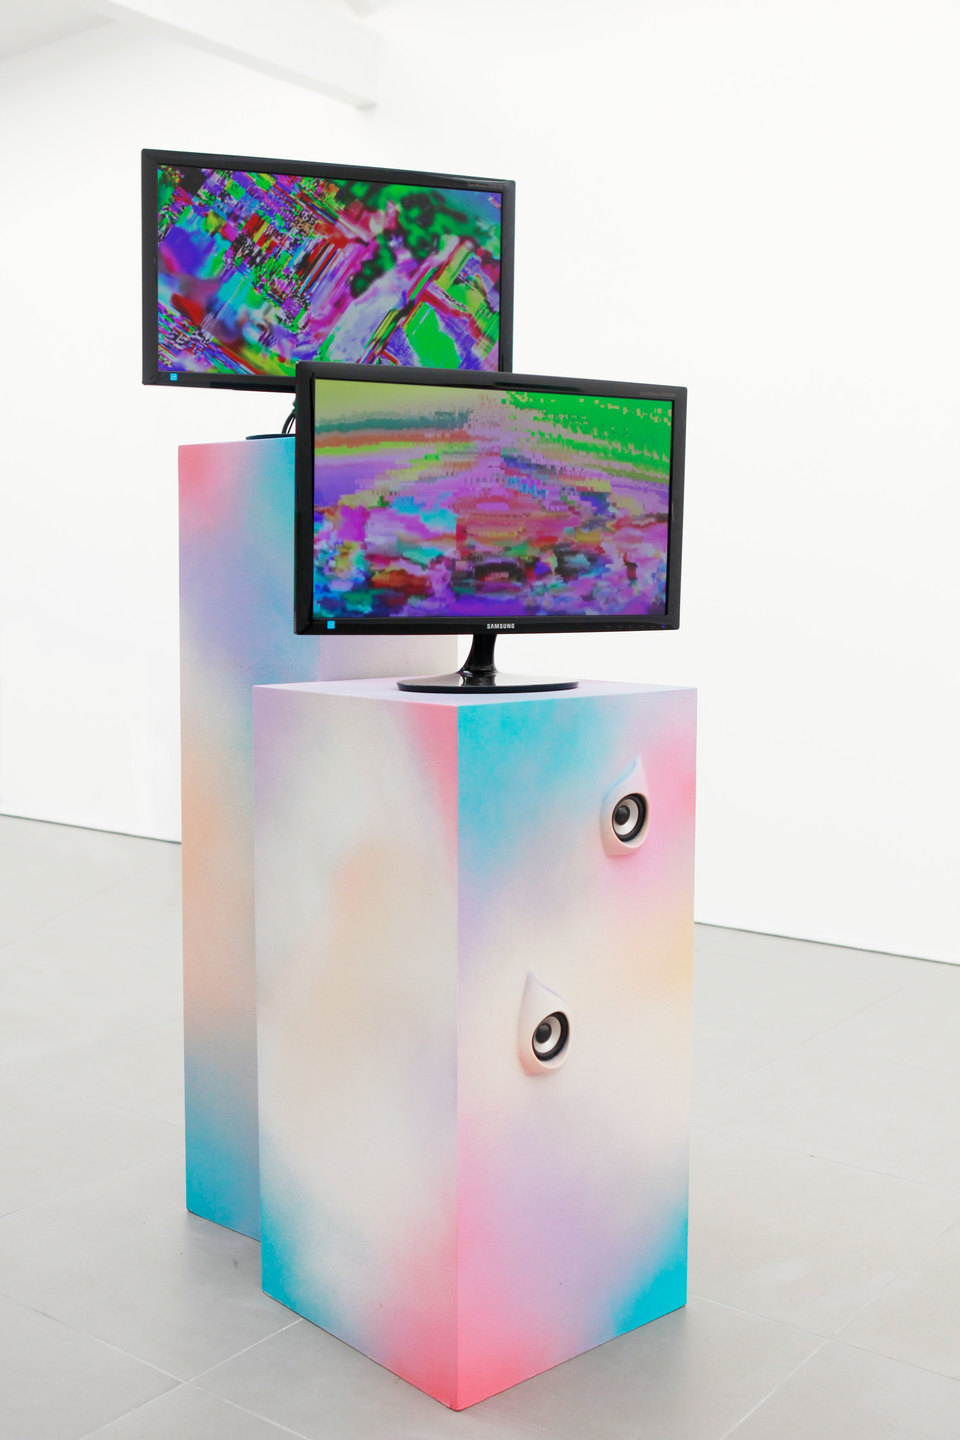 Adham Faramawy, Violet Likes Psychic Honey 2, 2012, Looped video + sculpture, 164 x 31 x 31 cm and 130 x 43 x 43 cm, Cell Project Space